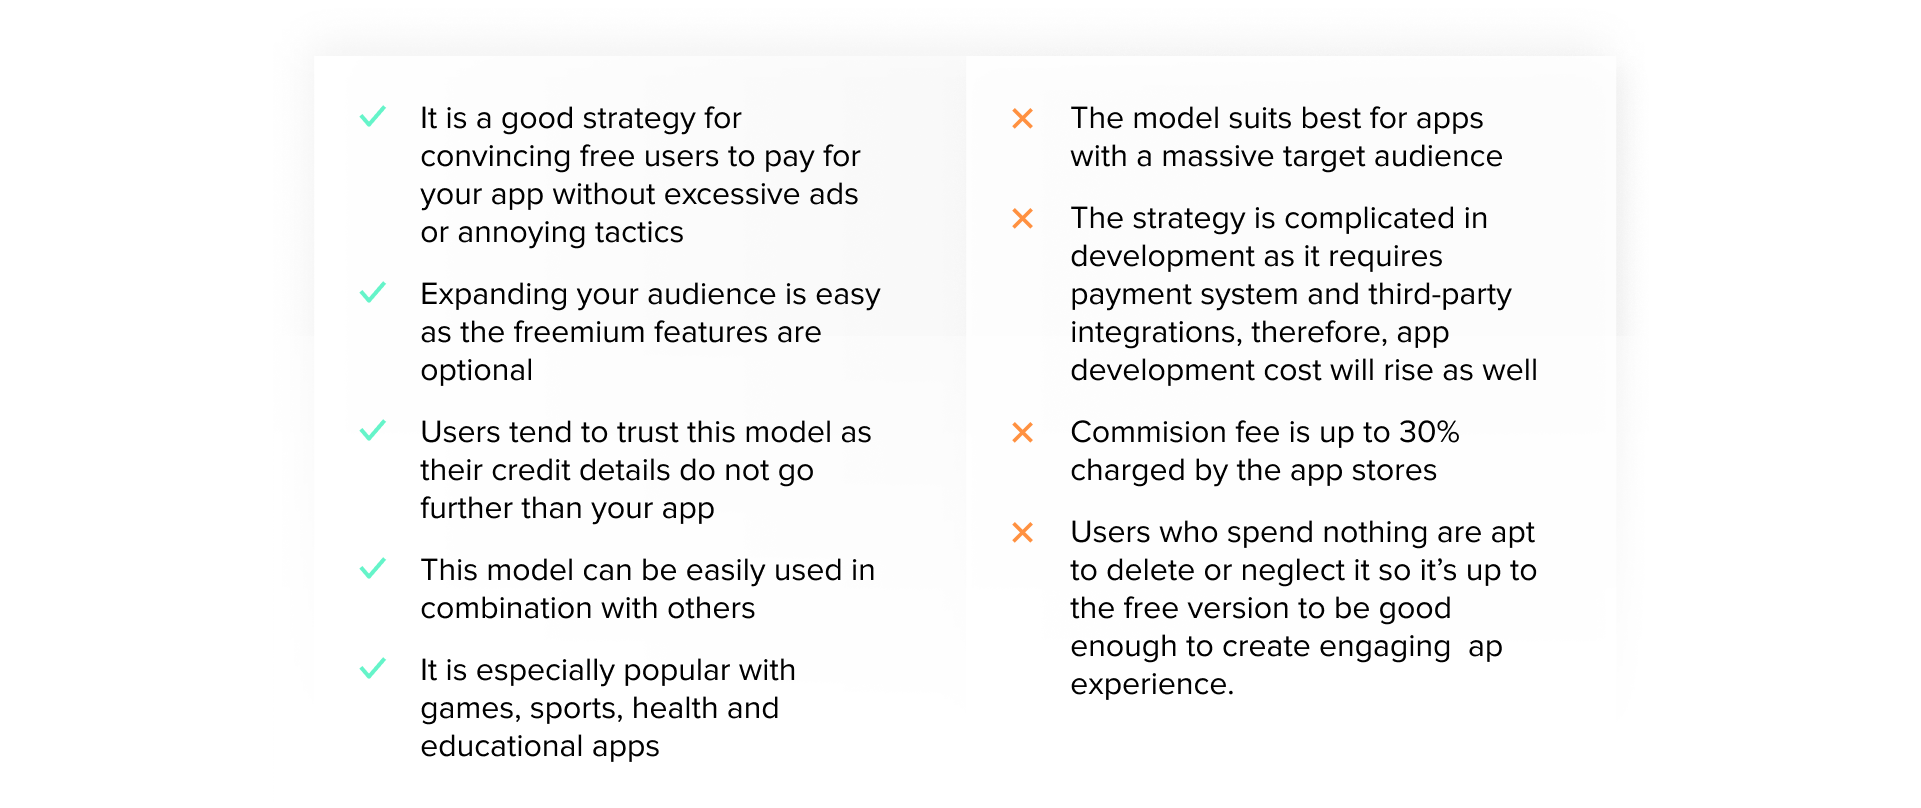 pros and cons of Freemium and In-App Purchase revenue monetization model